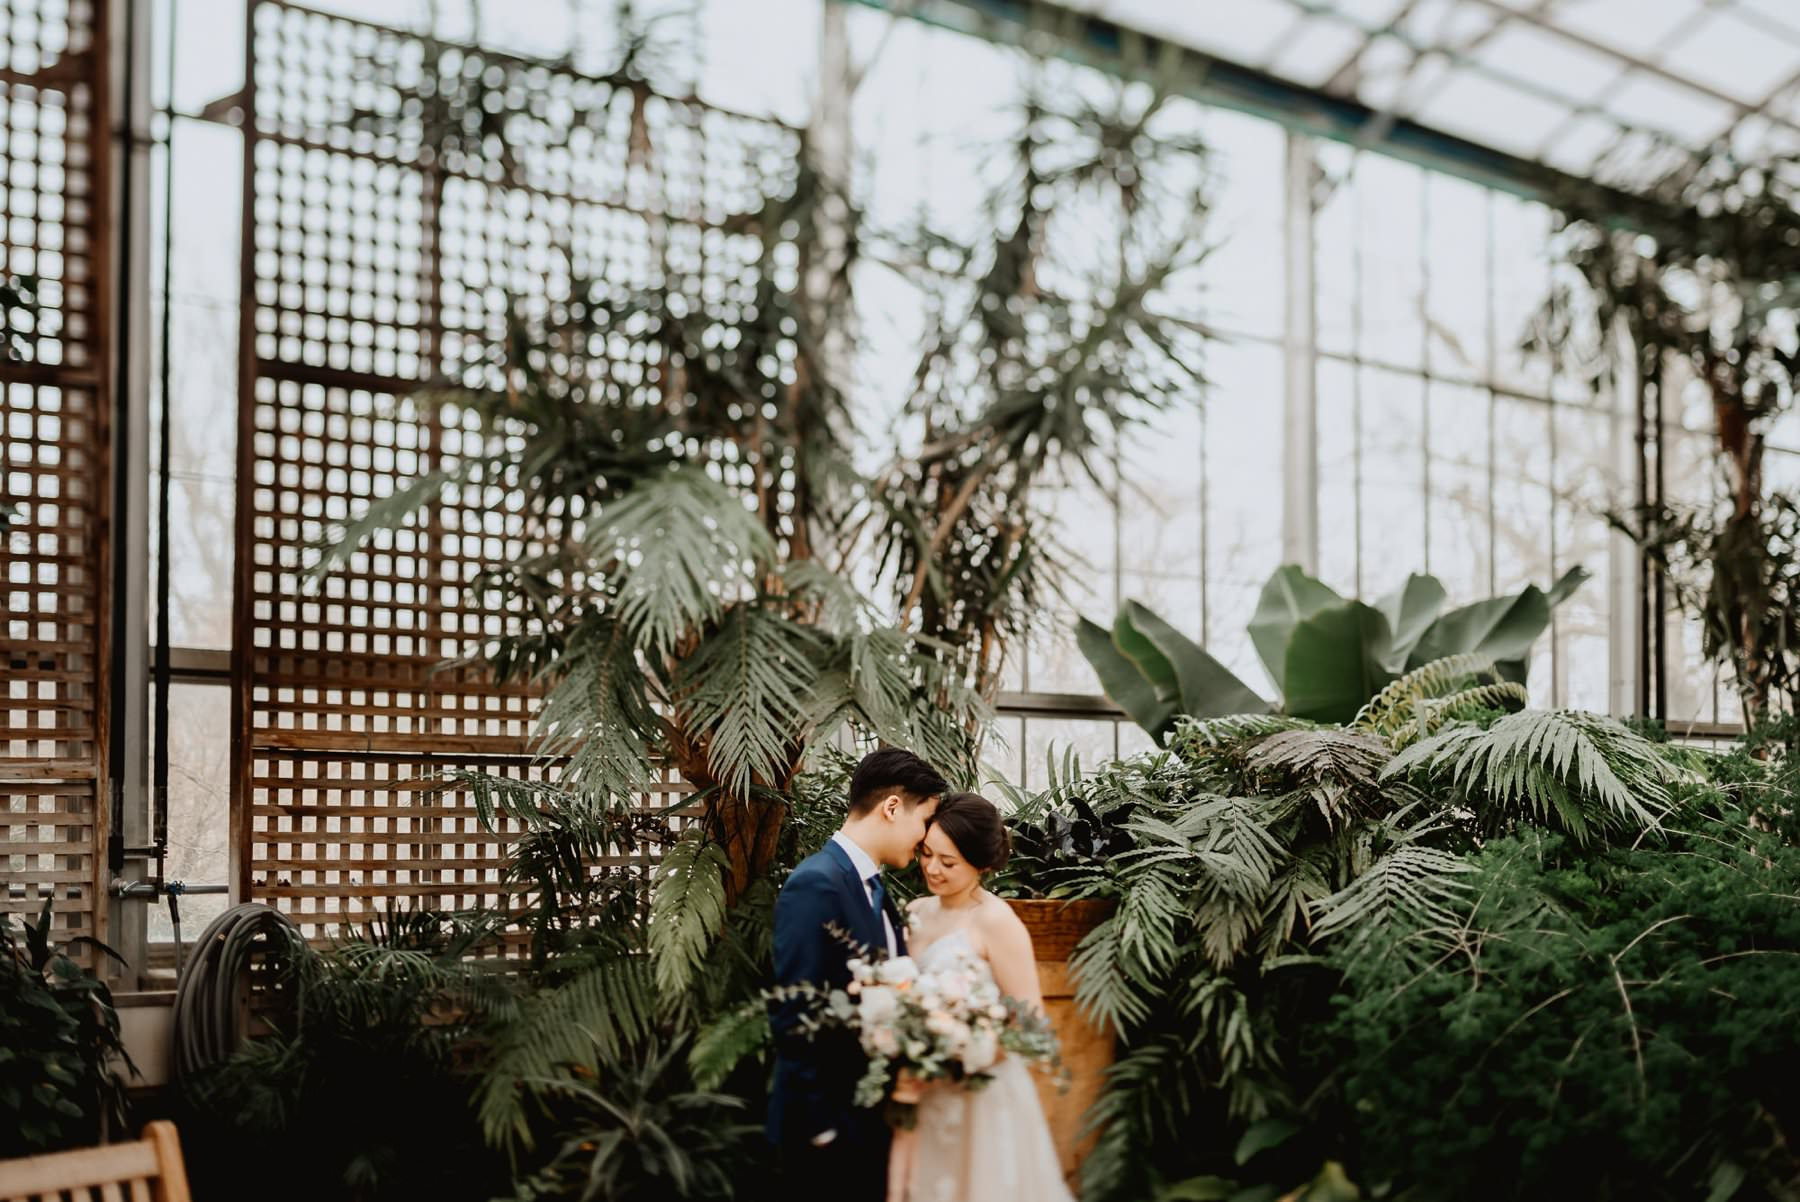 philadelphia_horticulture_center_wedding-64.jpg